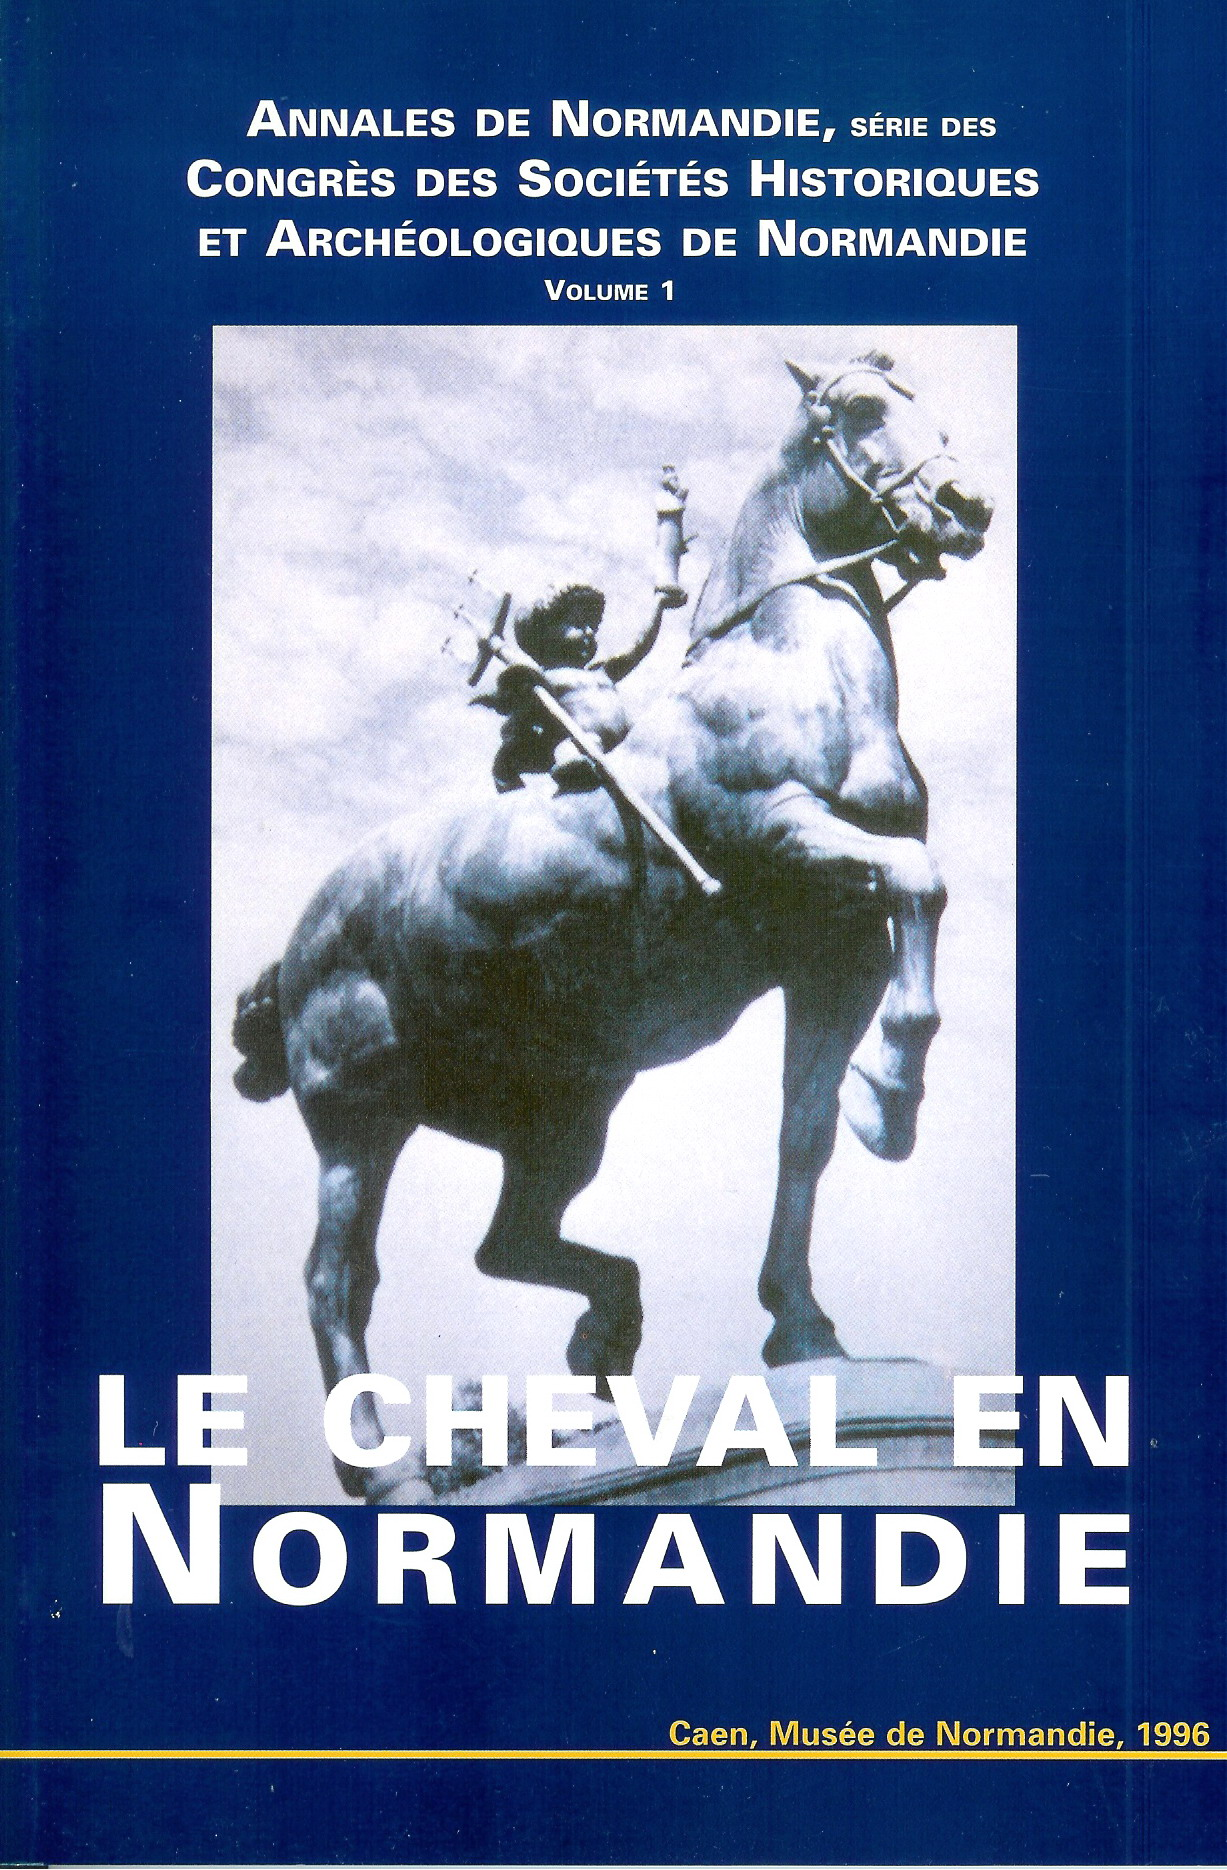 Le cheval en Normandie